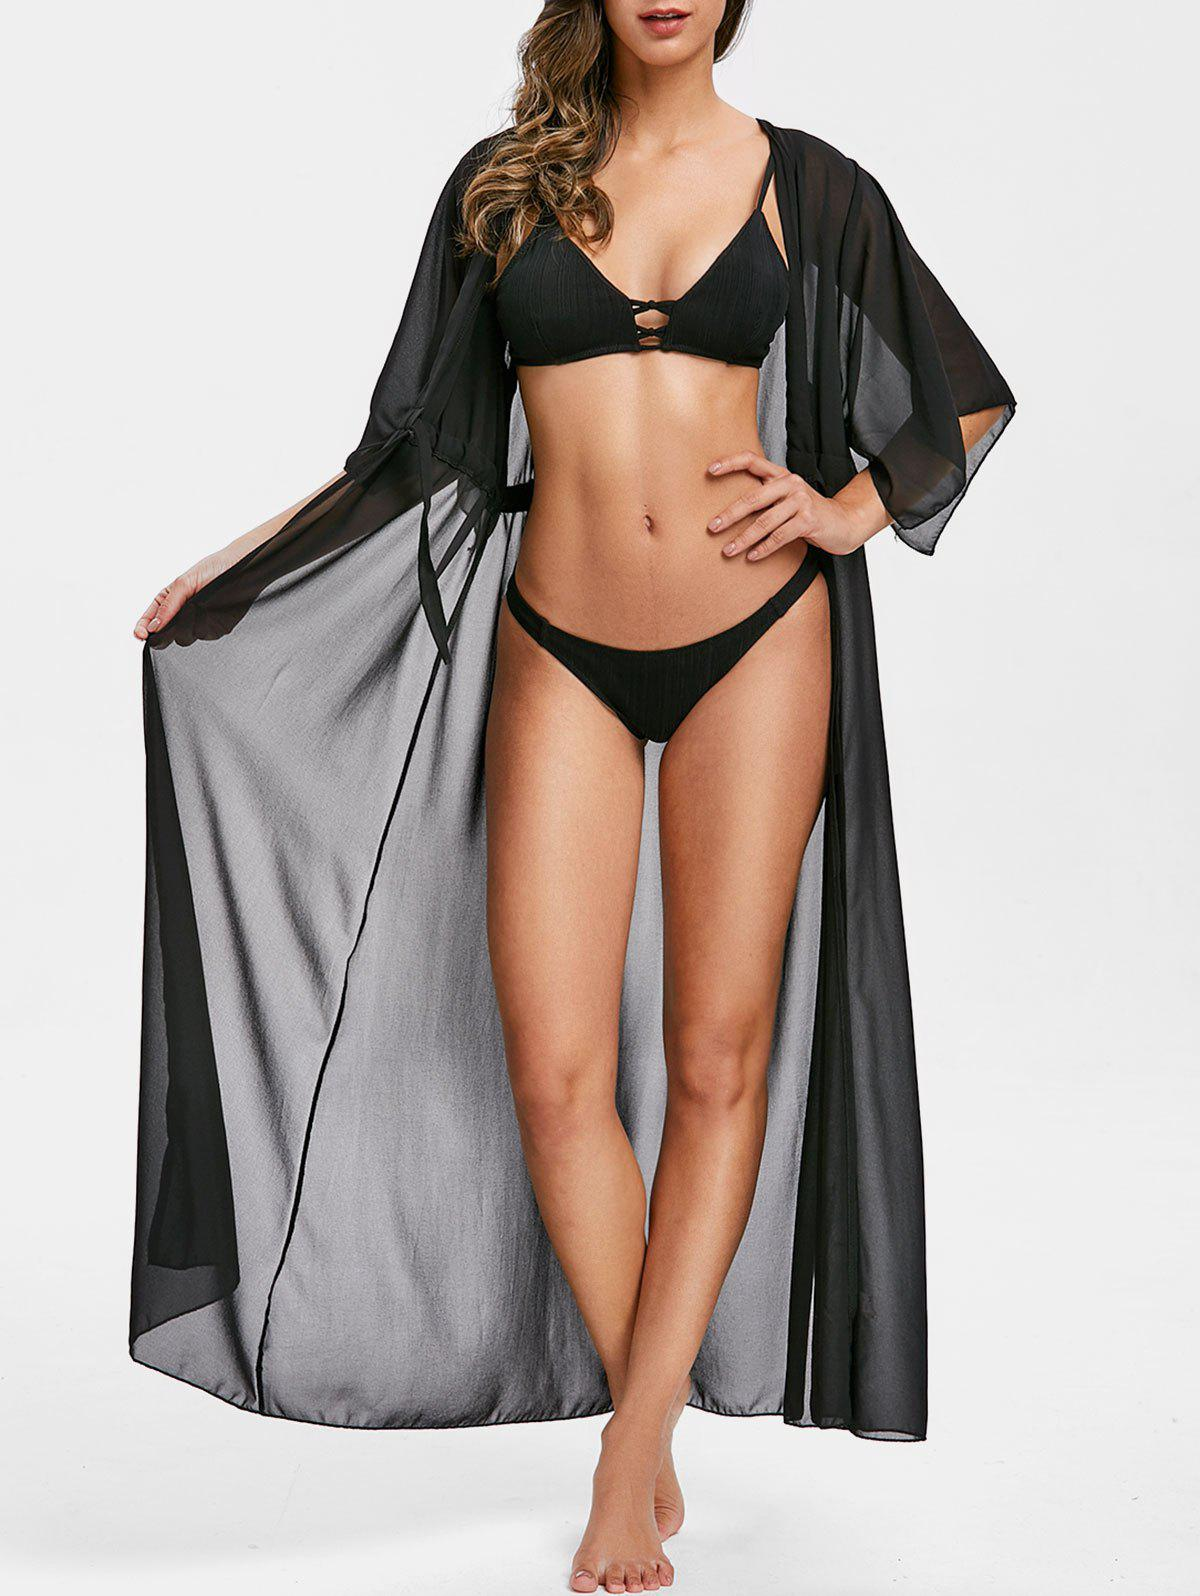 Cravate Longline Plage Cover Up Noir L